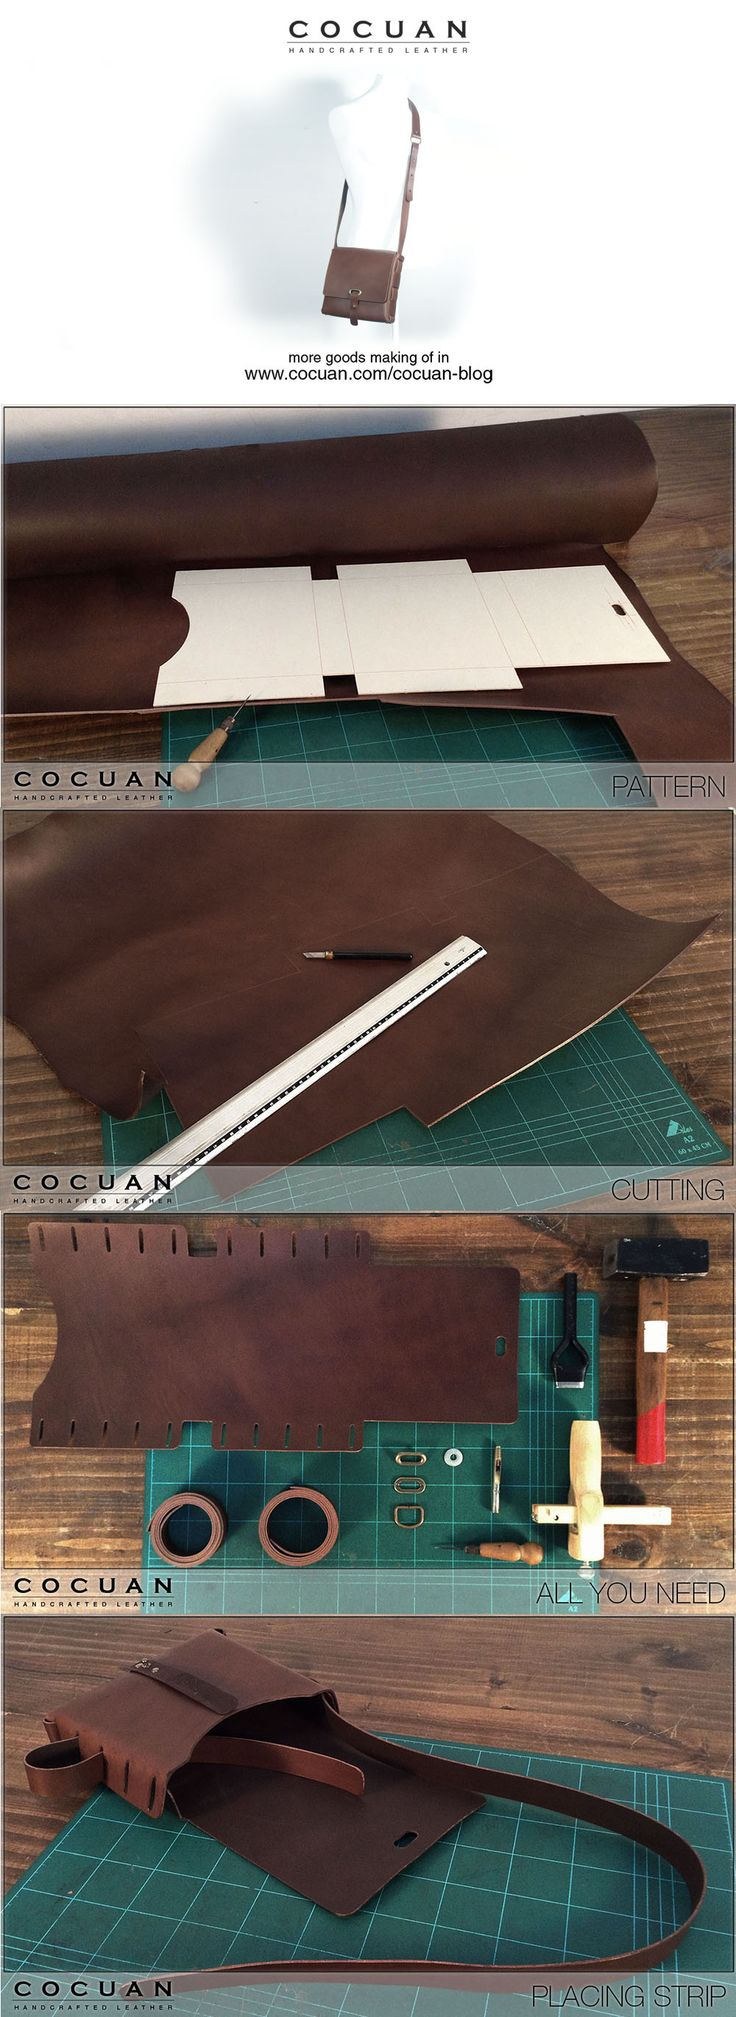 00-small-bag-making-of.jpg 1 000 × 2 741 pixlar